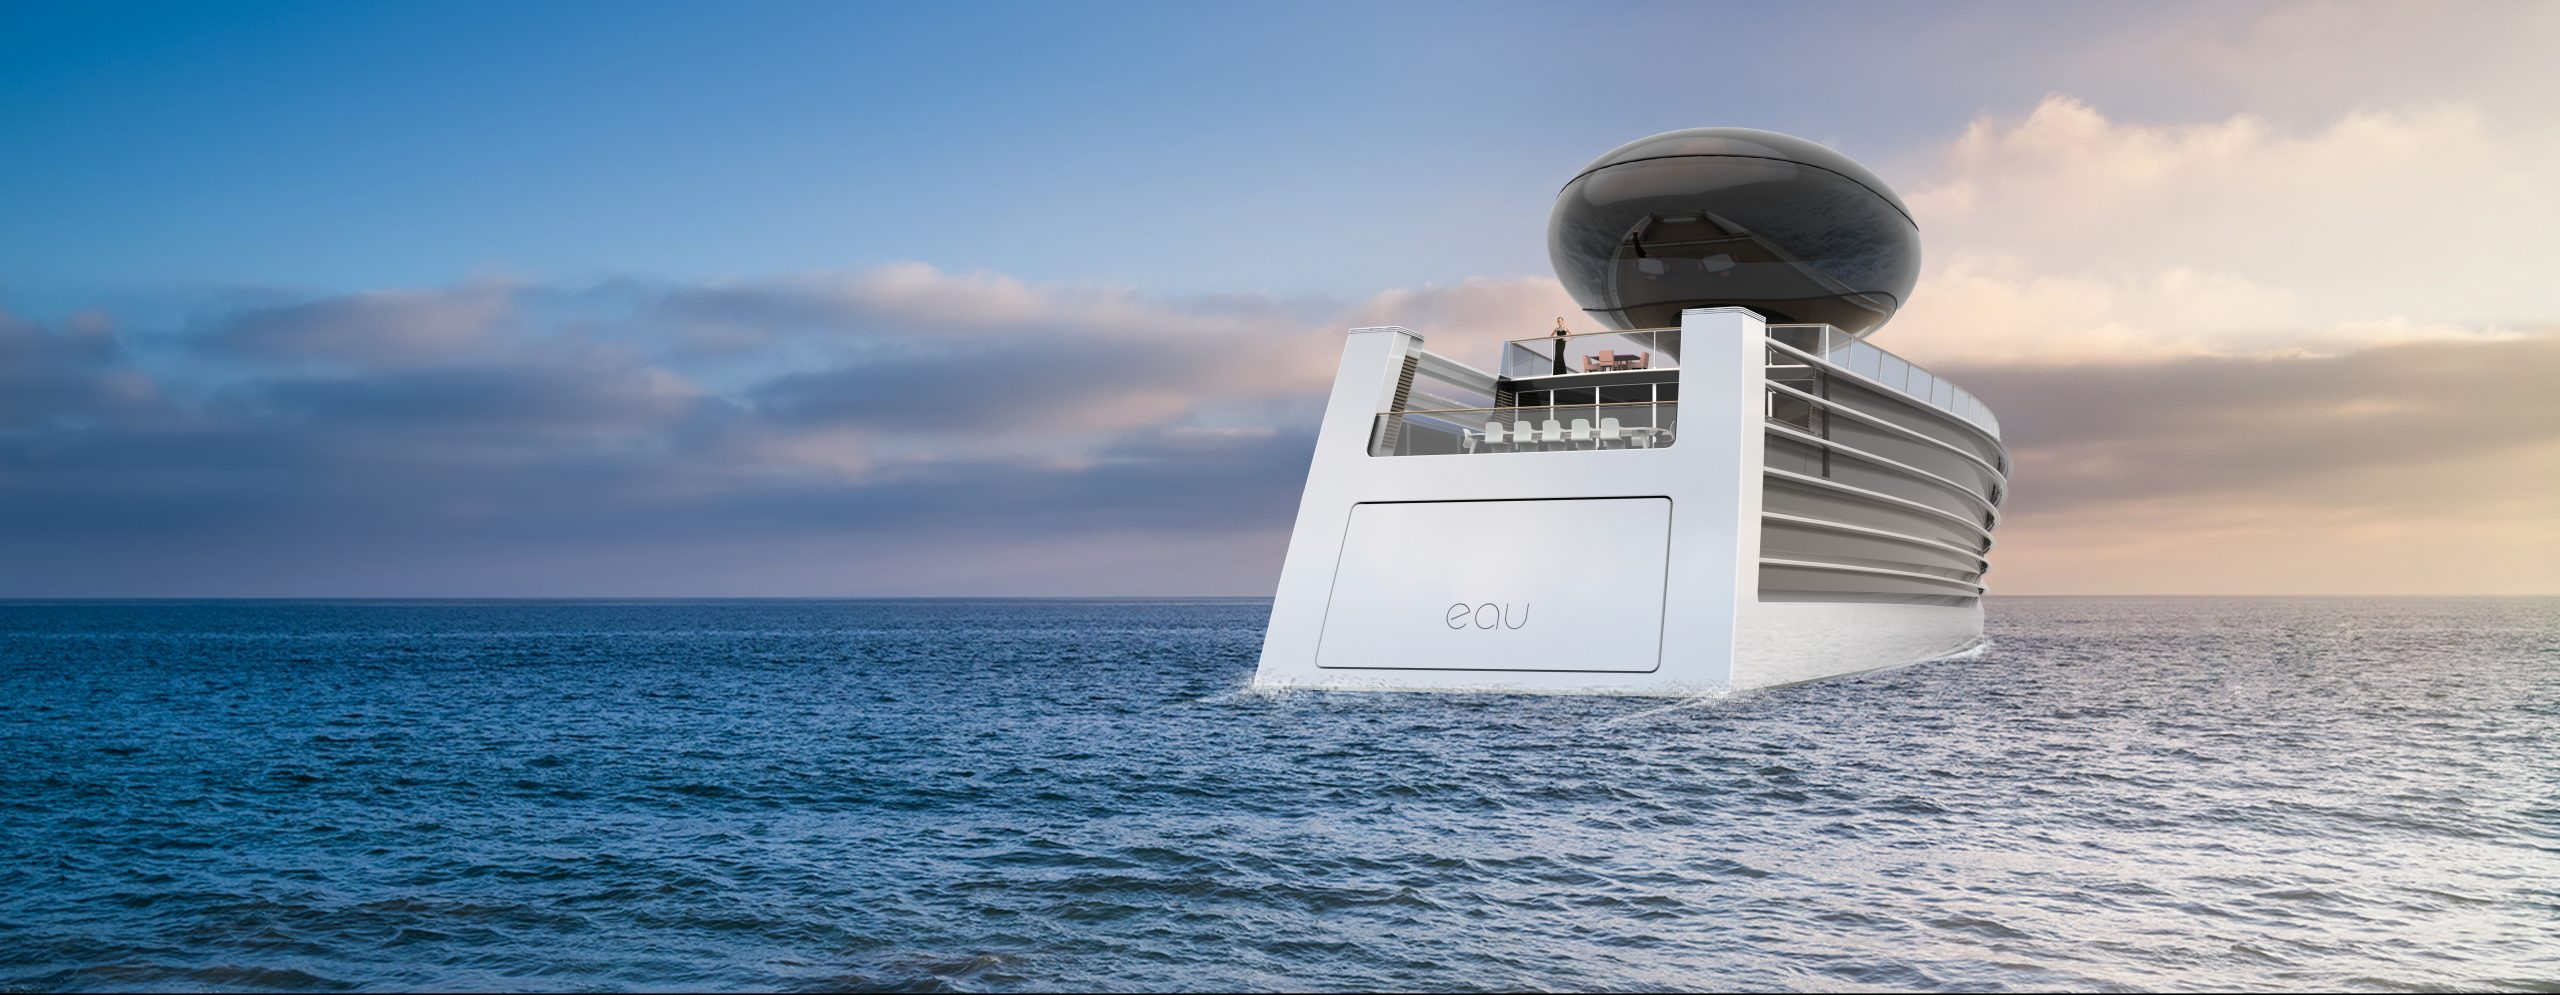 Eau electric super yacht Feadship Oceanco Studio Tjep Philippe Starck